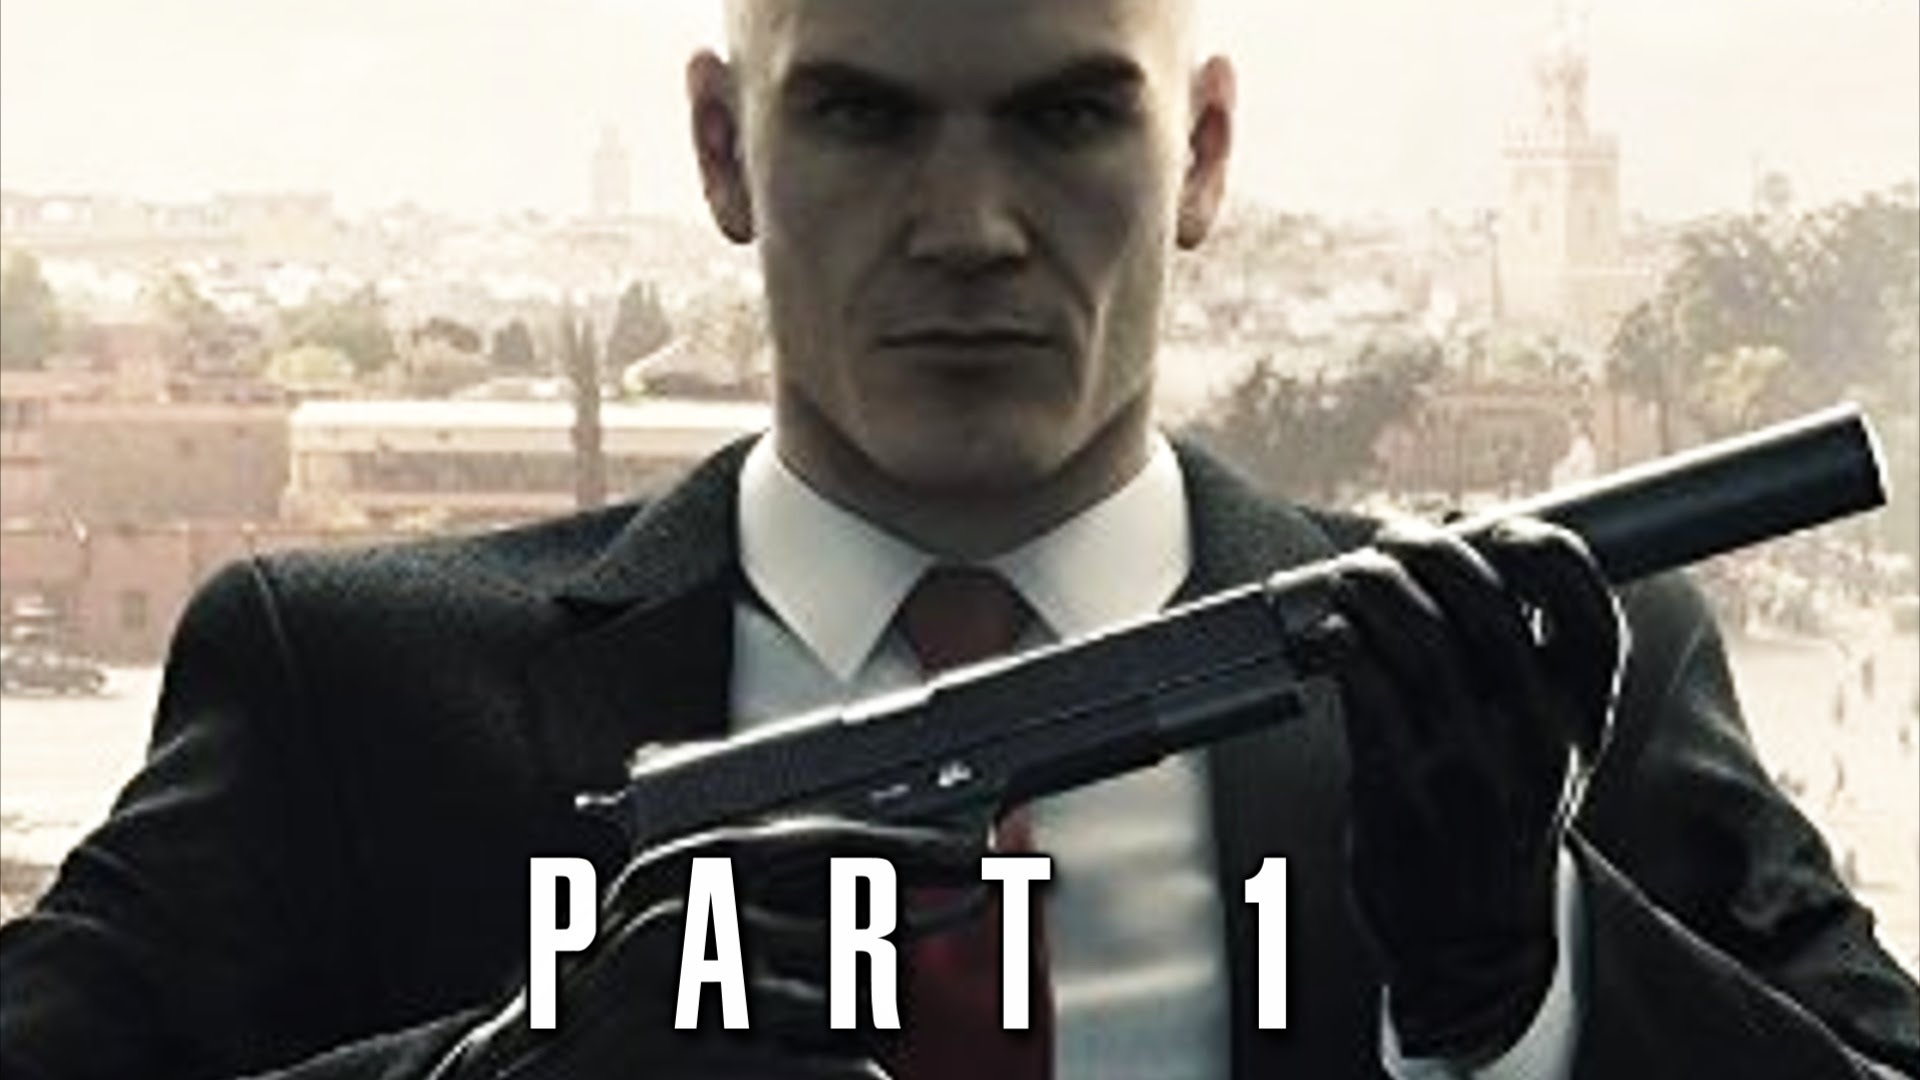 Hitman Walkthrough Gameplay Part 1 Yacht Hitman 6 2016 Video Games Wikis Cheats Walkthroughs Reviews News Videos